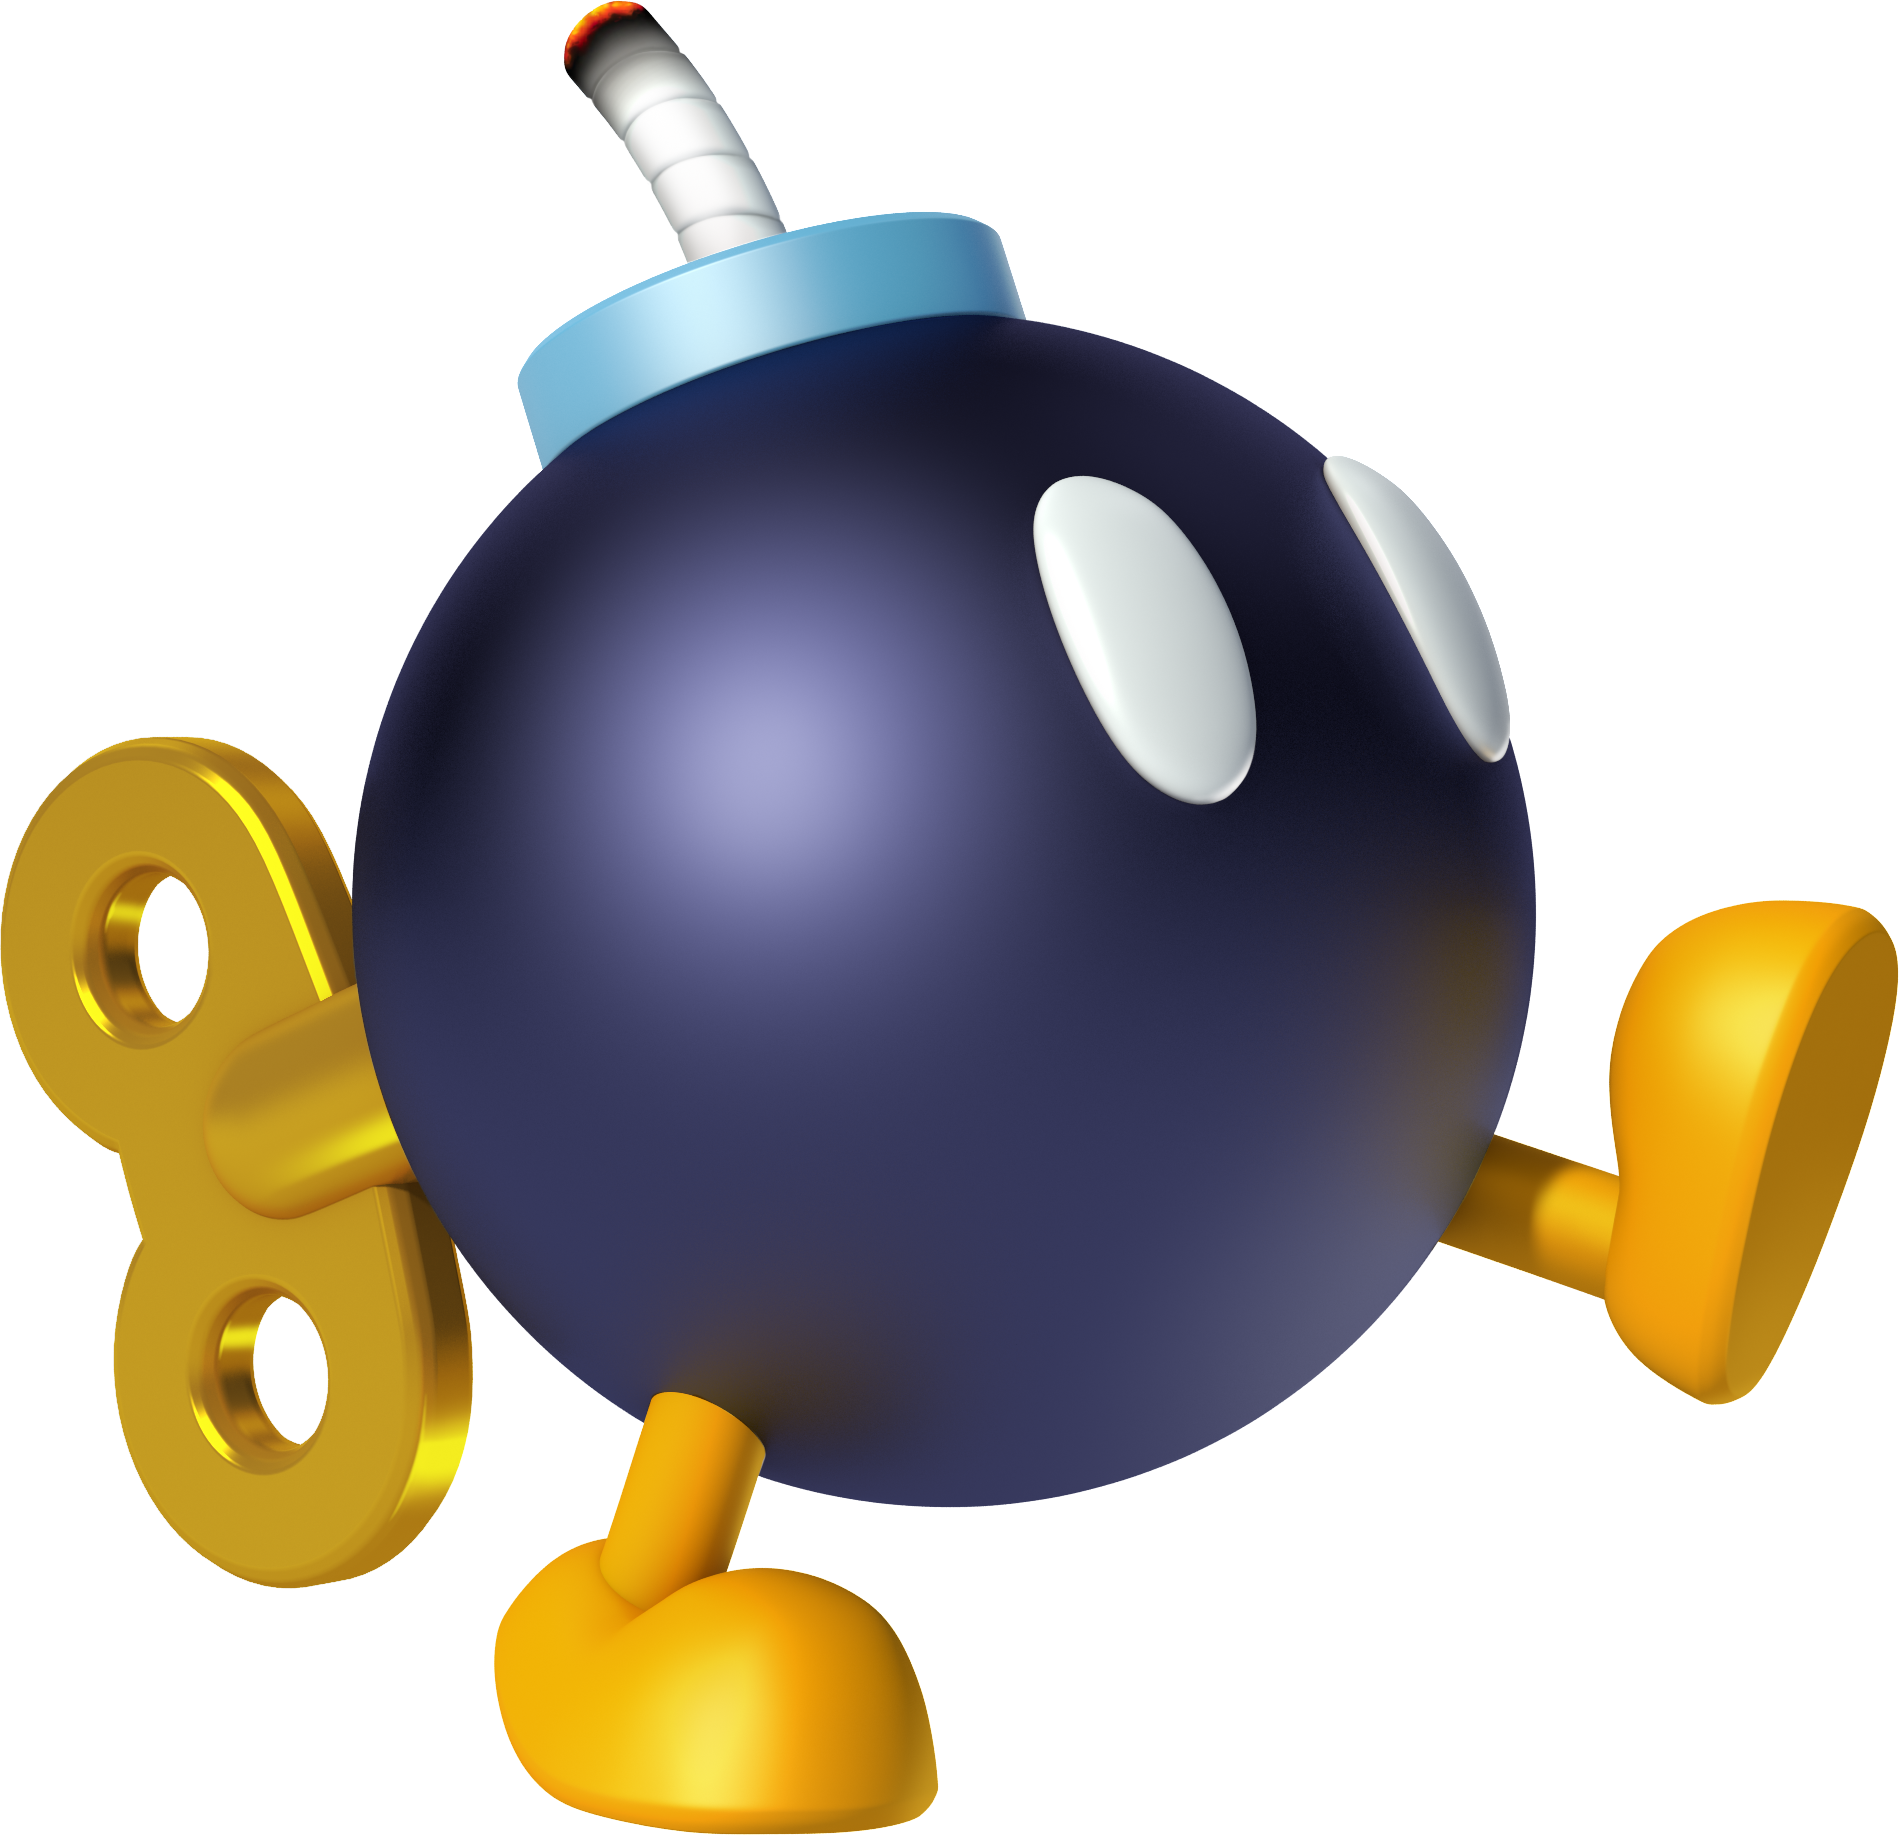 Bob-omb | Kaizo Mario Maker Wikia | FANDOM powered by Wikia